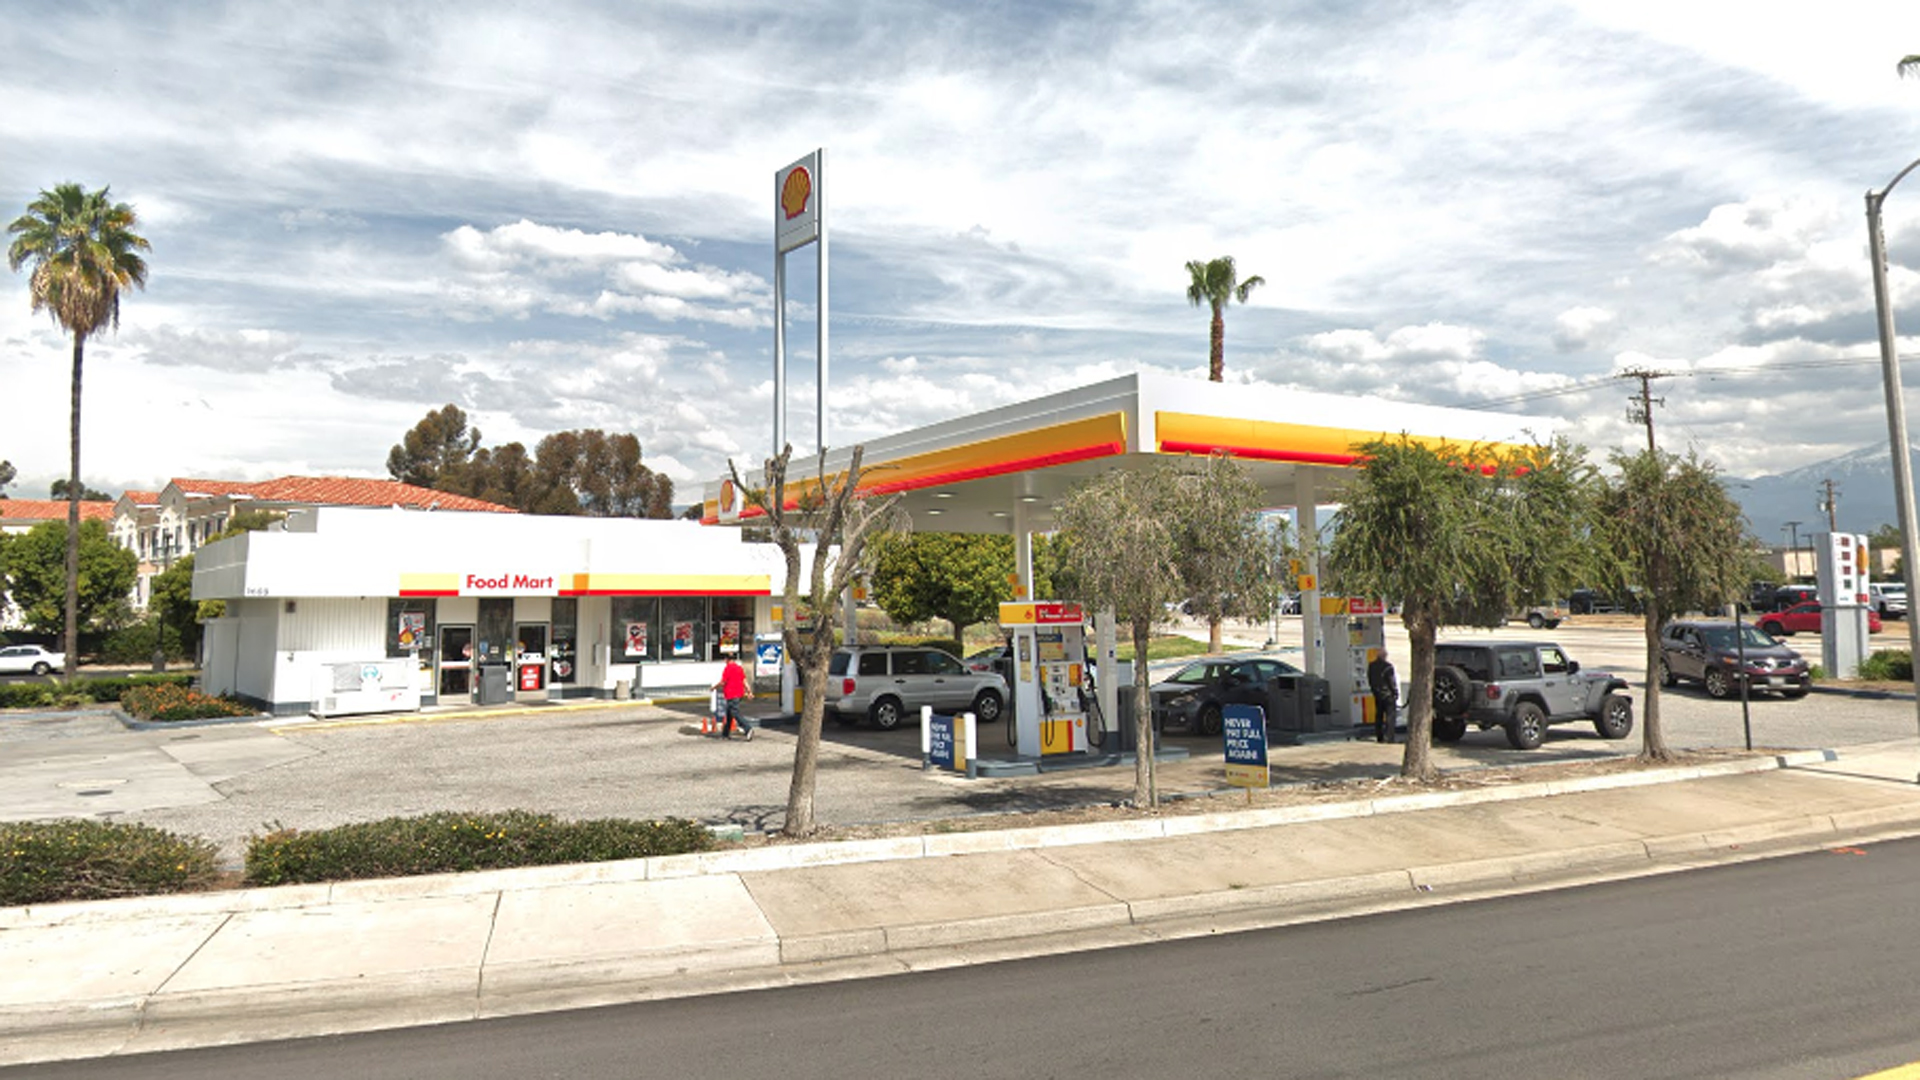 A Shell gas station in Redlands is is shown in a Street View image from Google Maps.